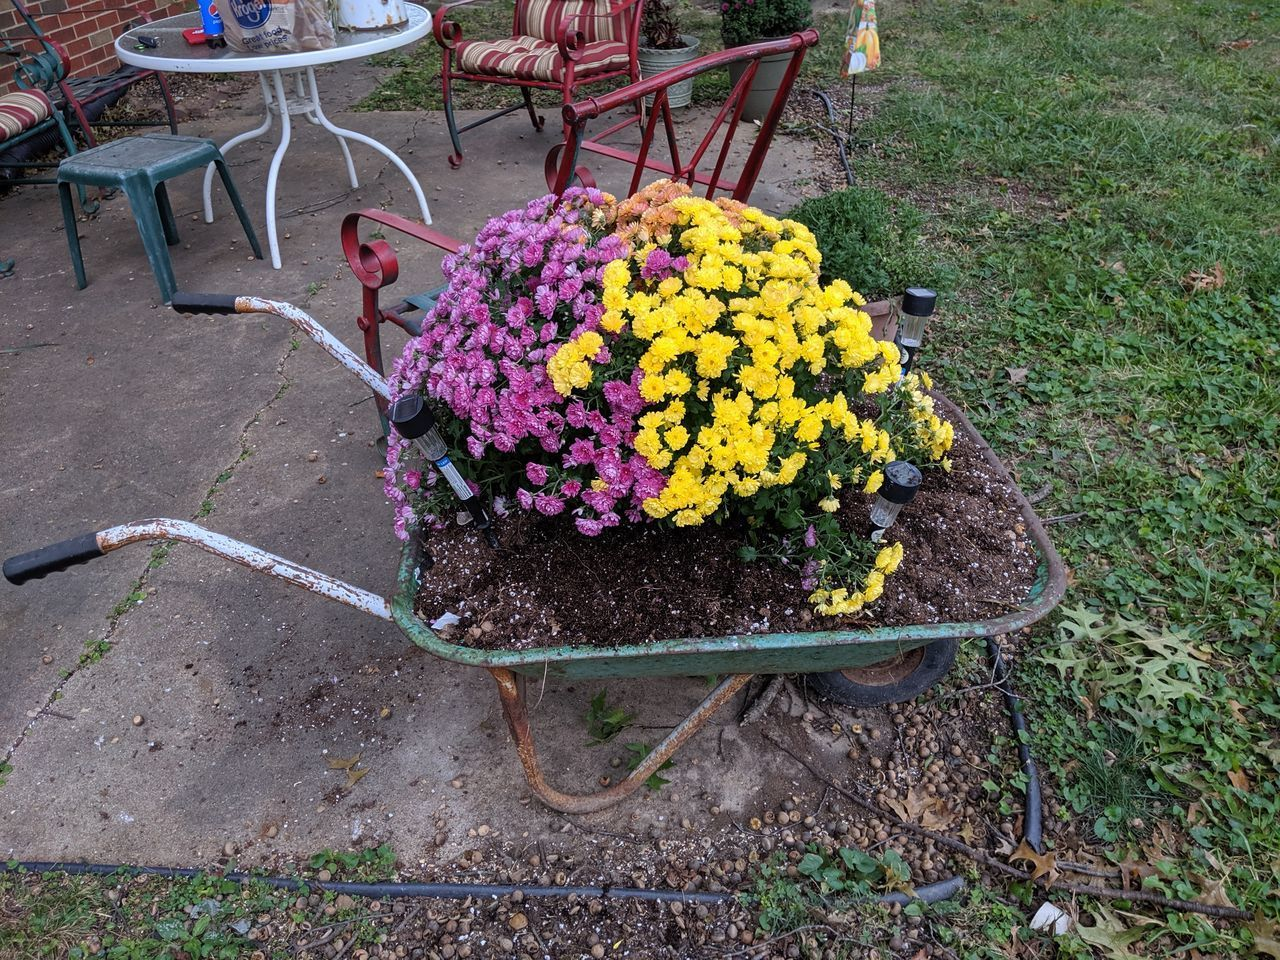 flower, flowering plant, plant, growth, freshness, fragility, nature, day, vulnerability, beauty in nature, high angle view, yellow, no people, outdoors, petal, potted plant, choice, variation, springtime, flower head, purple, flower pot, gardening